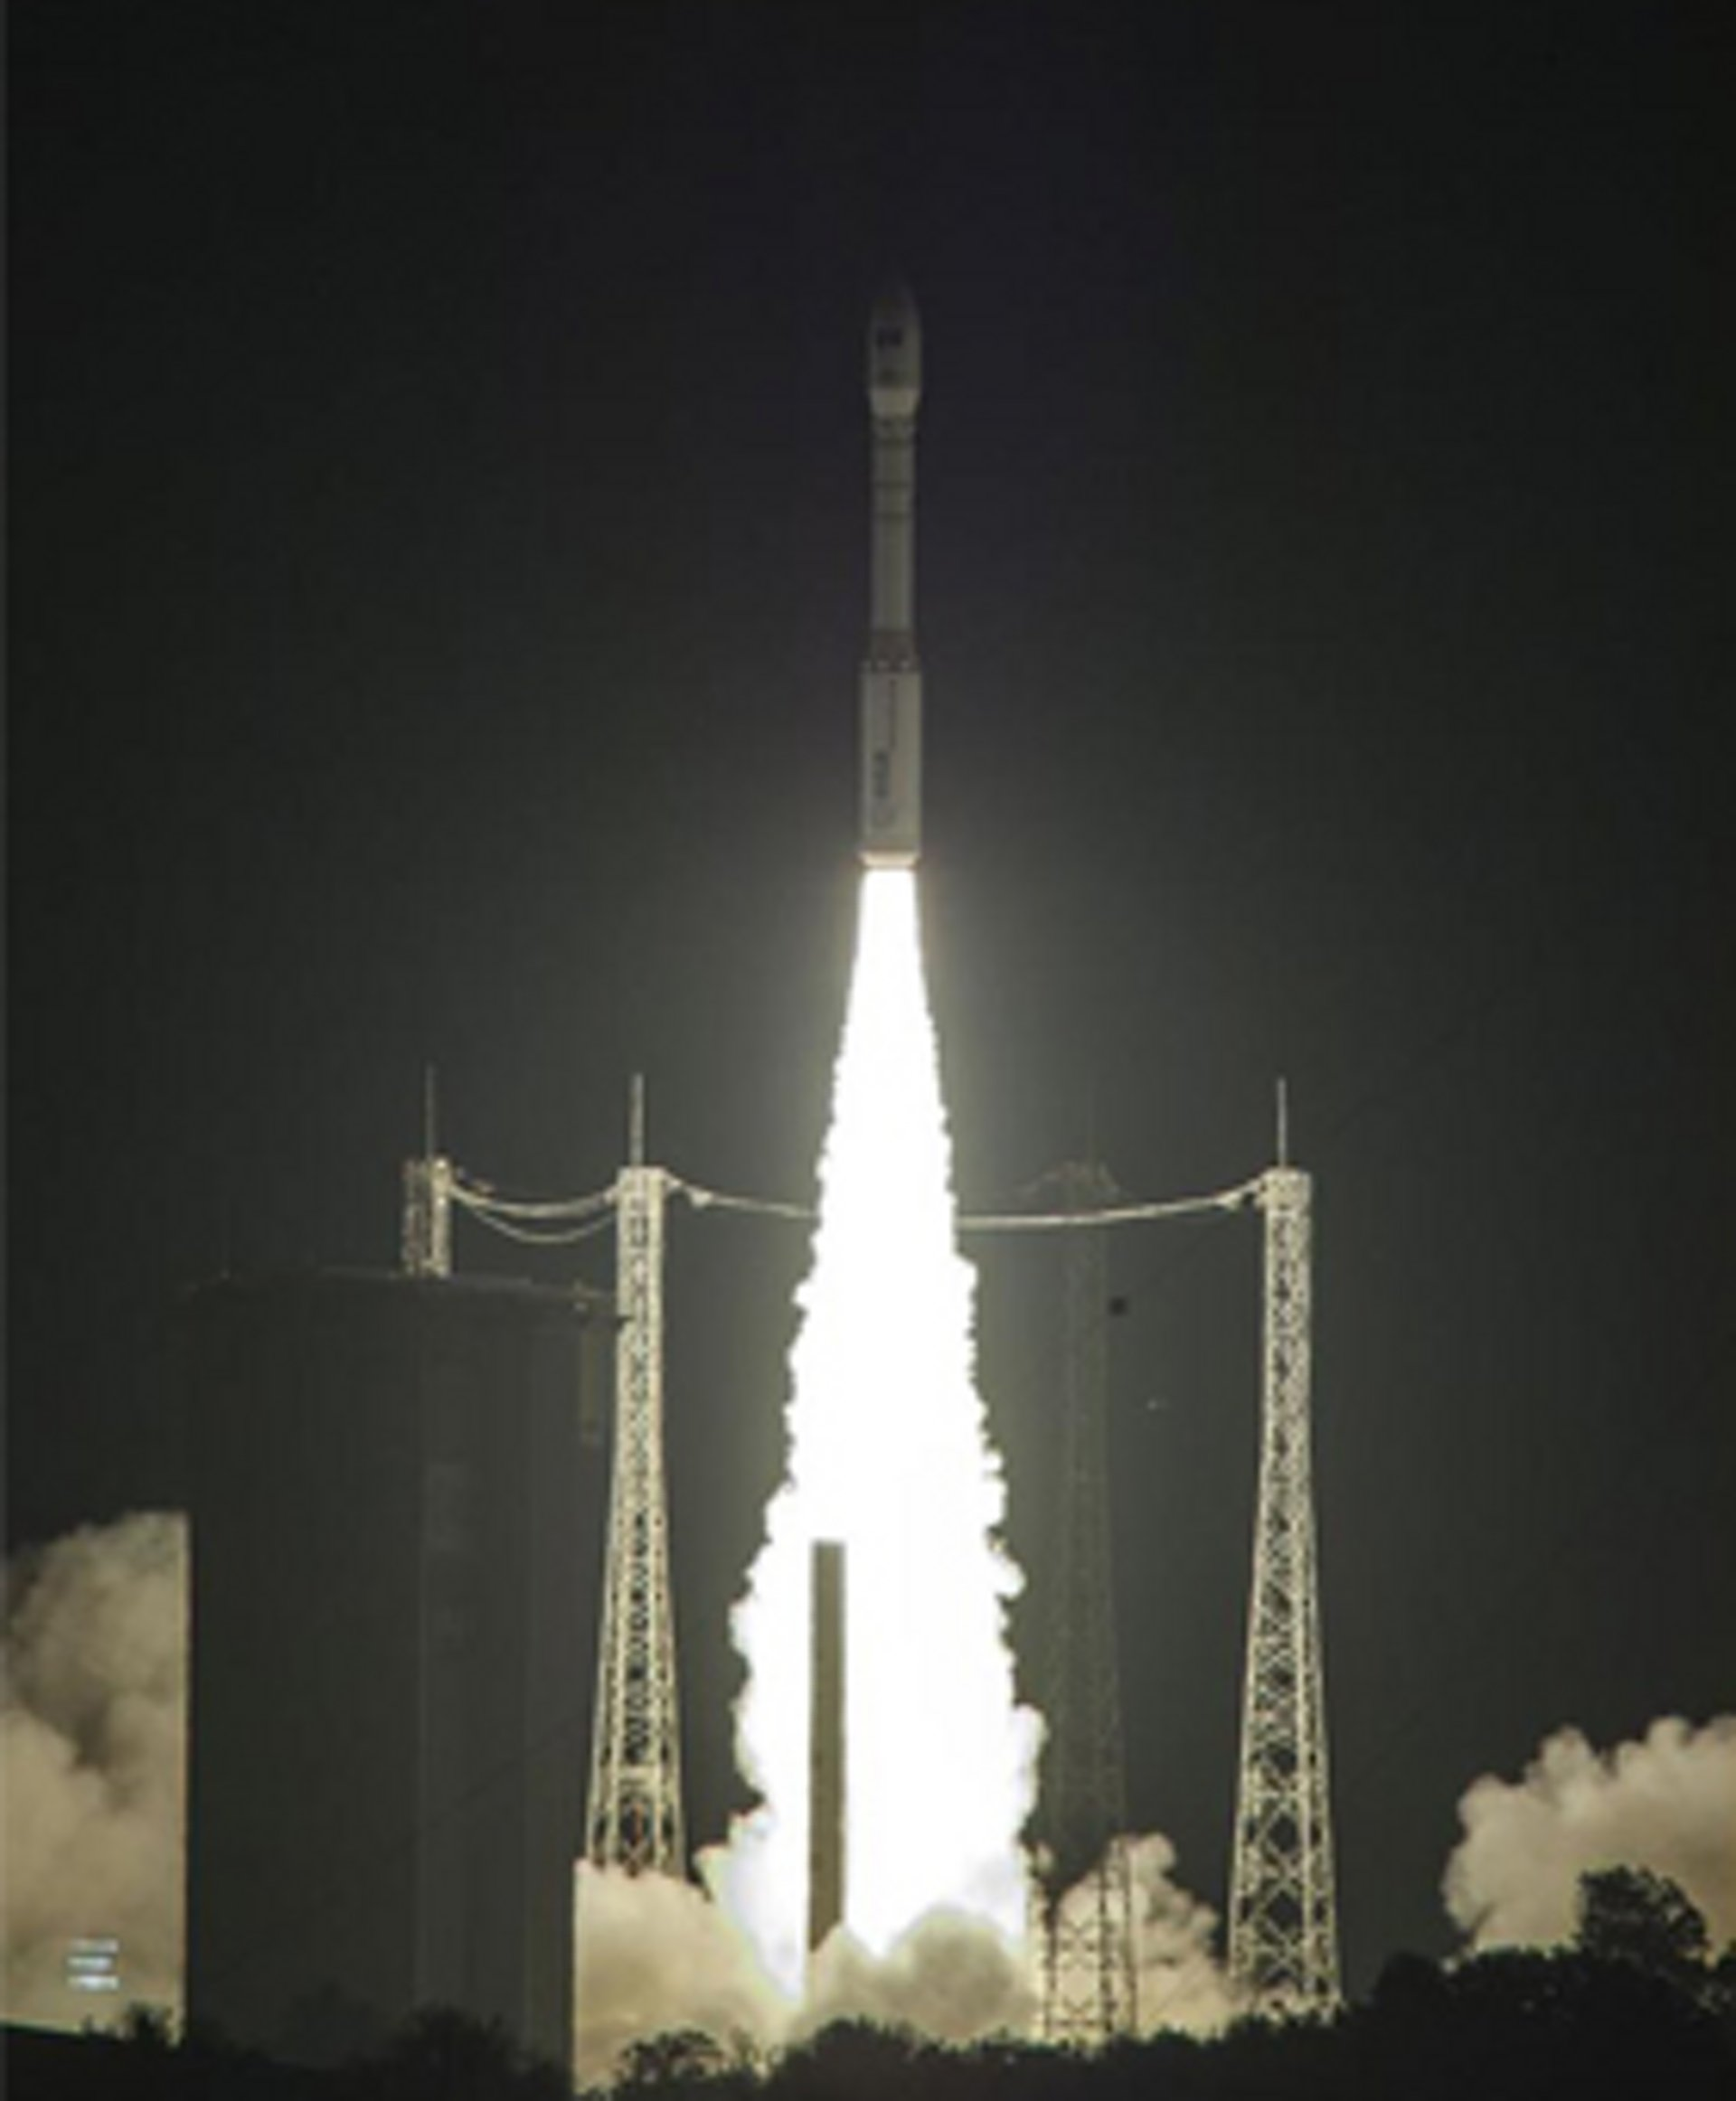 Vega launcher take off carrying Sentinel-2A satellite from the spaceport in Kourou, French Guiana